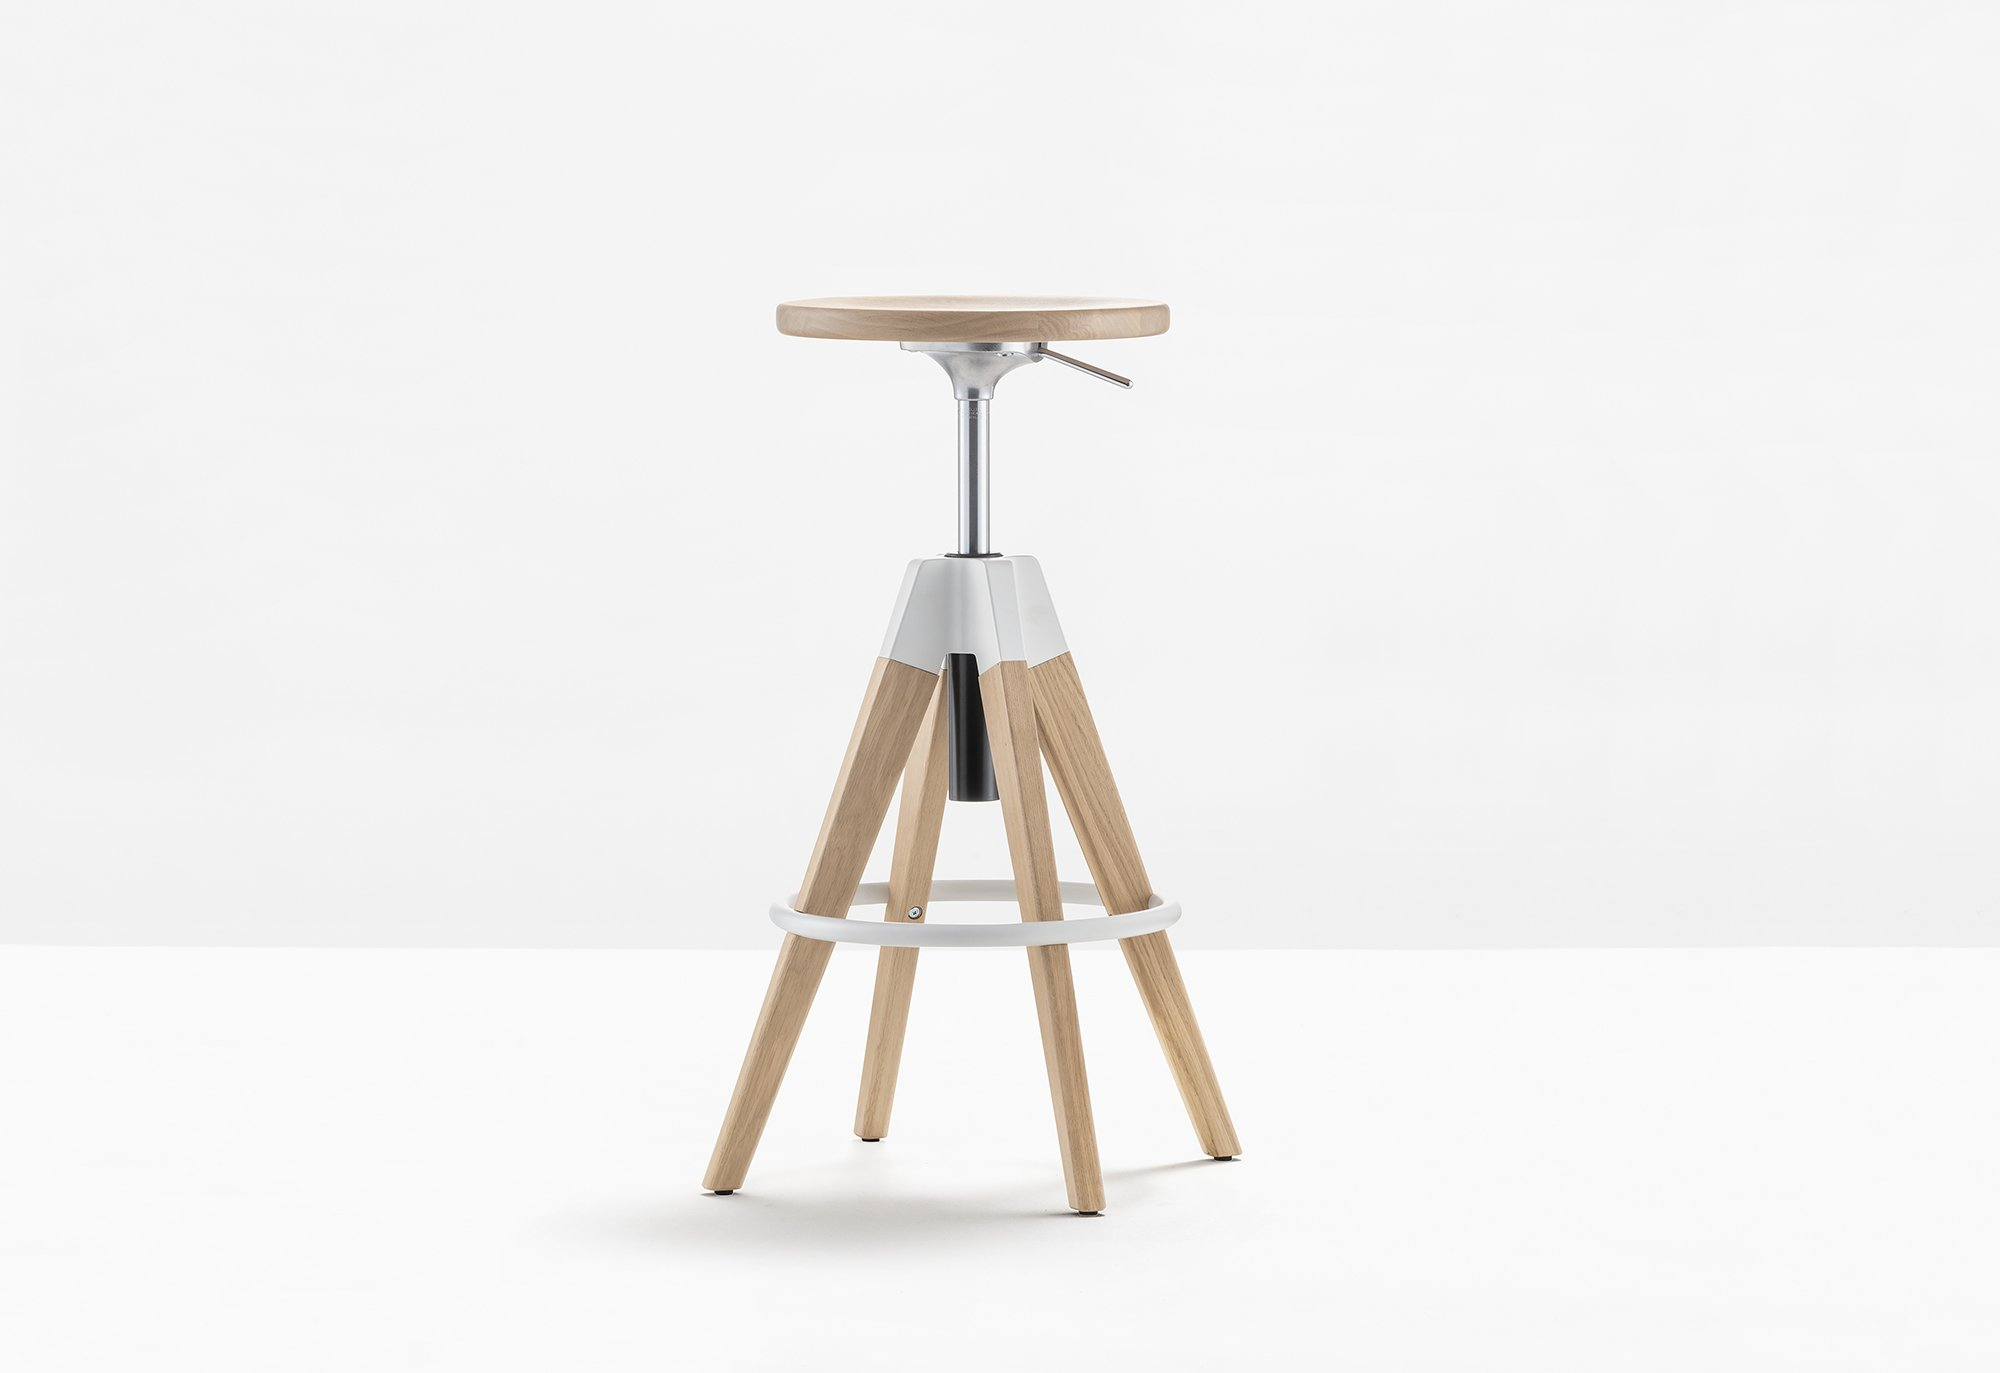 Arki Stool from Pedrali, designed by Pedrali R&D